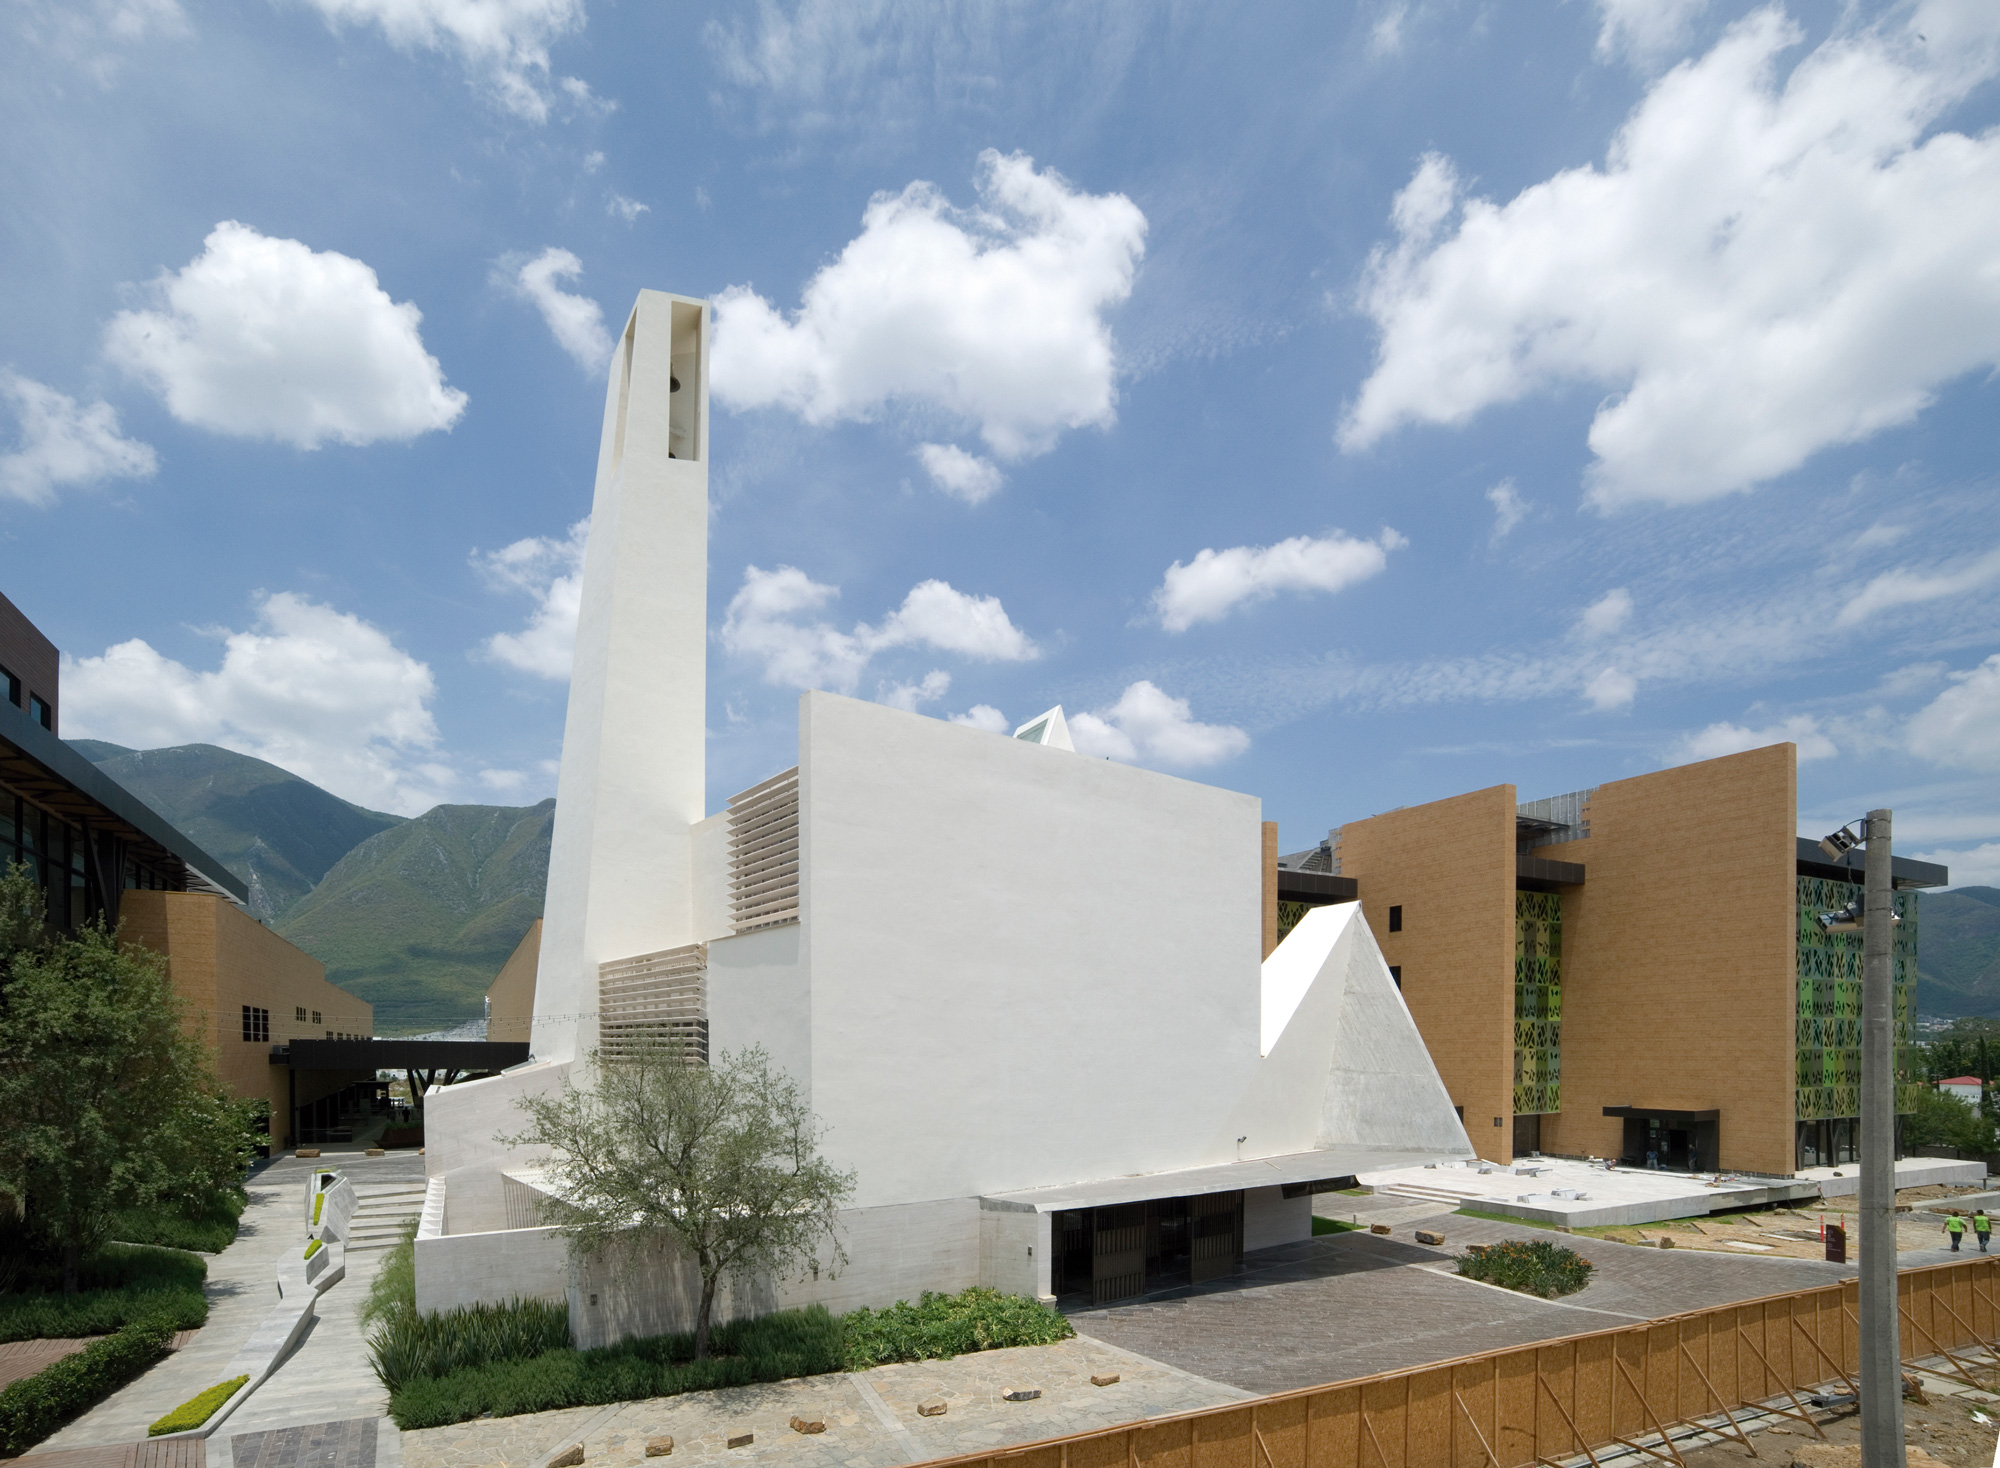 Parish Church El Senor De La Misericordia, Moneo Brock - Jeffrey Brock © Jeffrey Brock